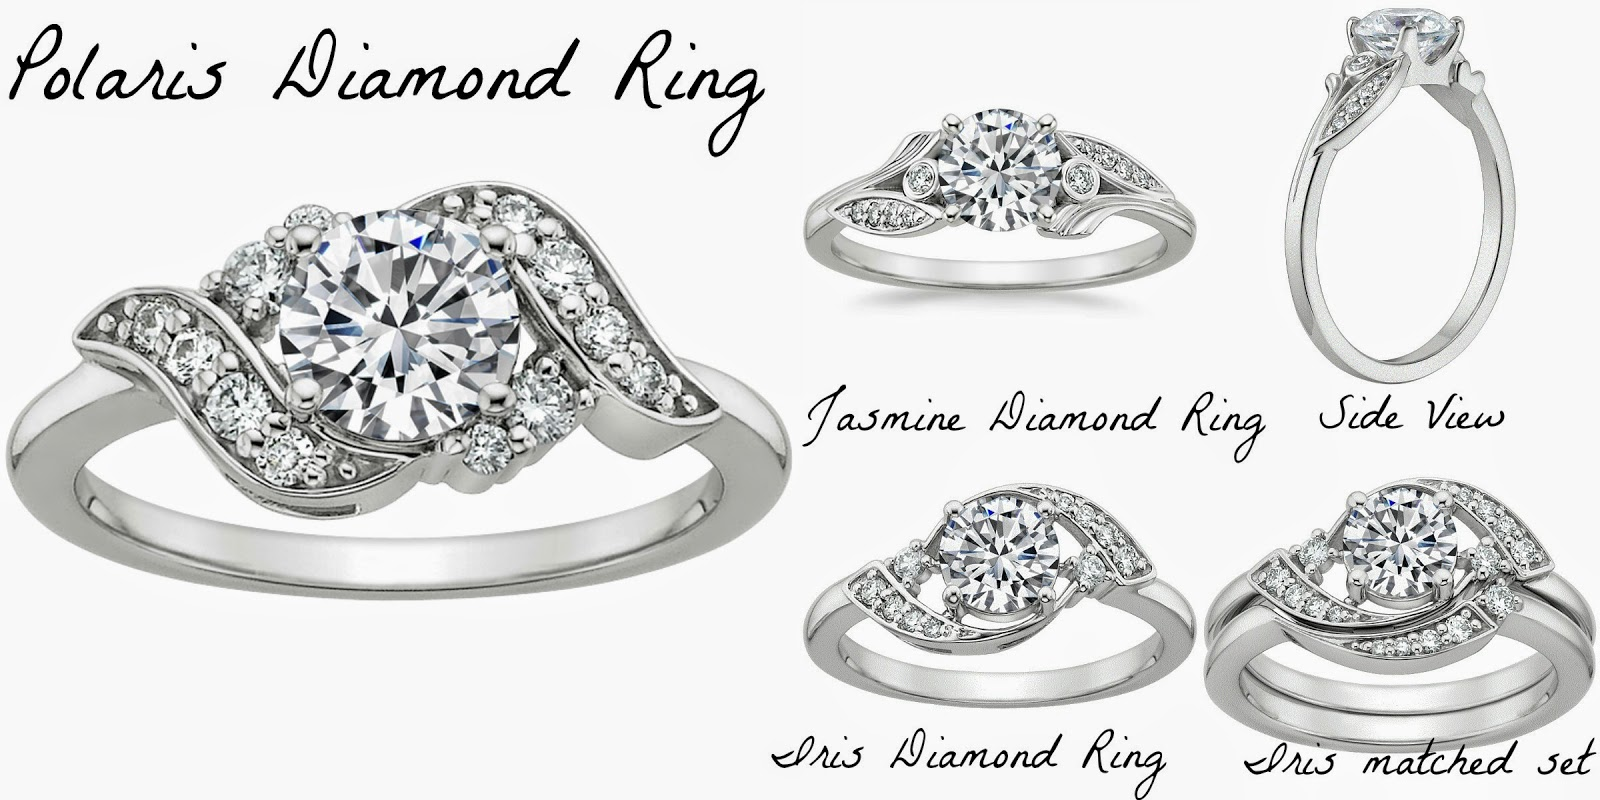 I Think The Polaris Diamond Ring Is My Favorite Of The Bunch The Way It  Flows Together With The One Center Piece